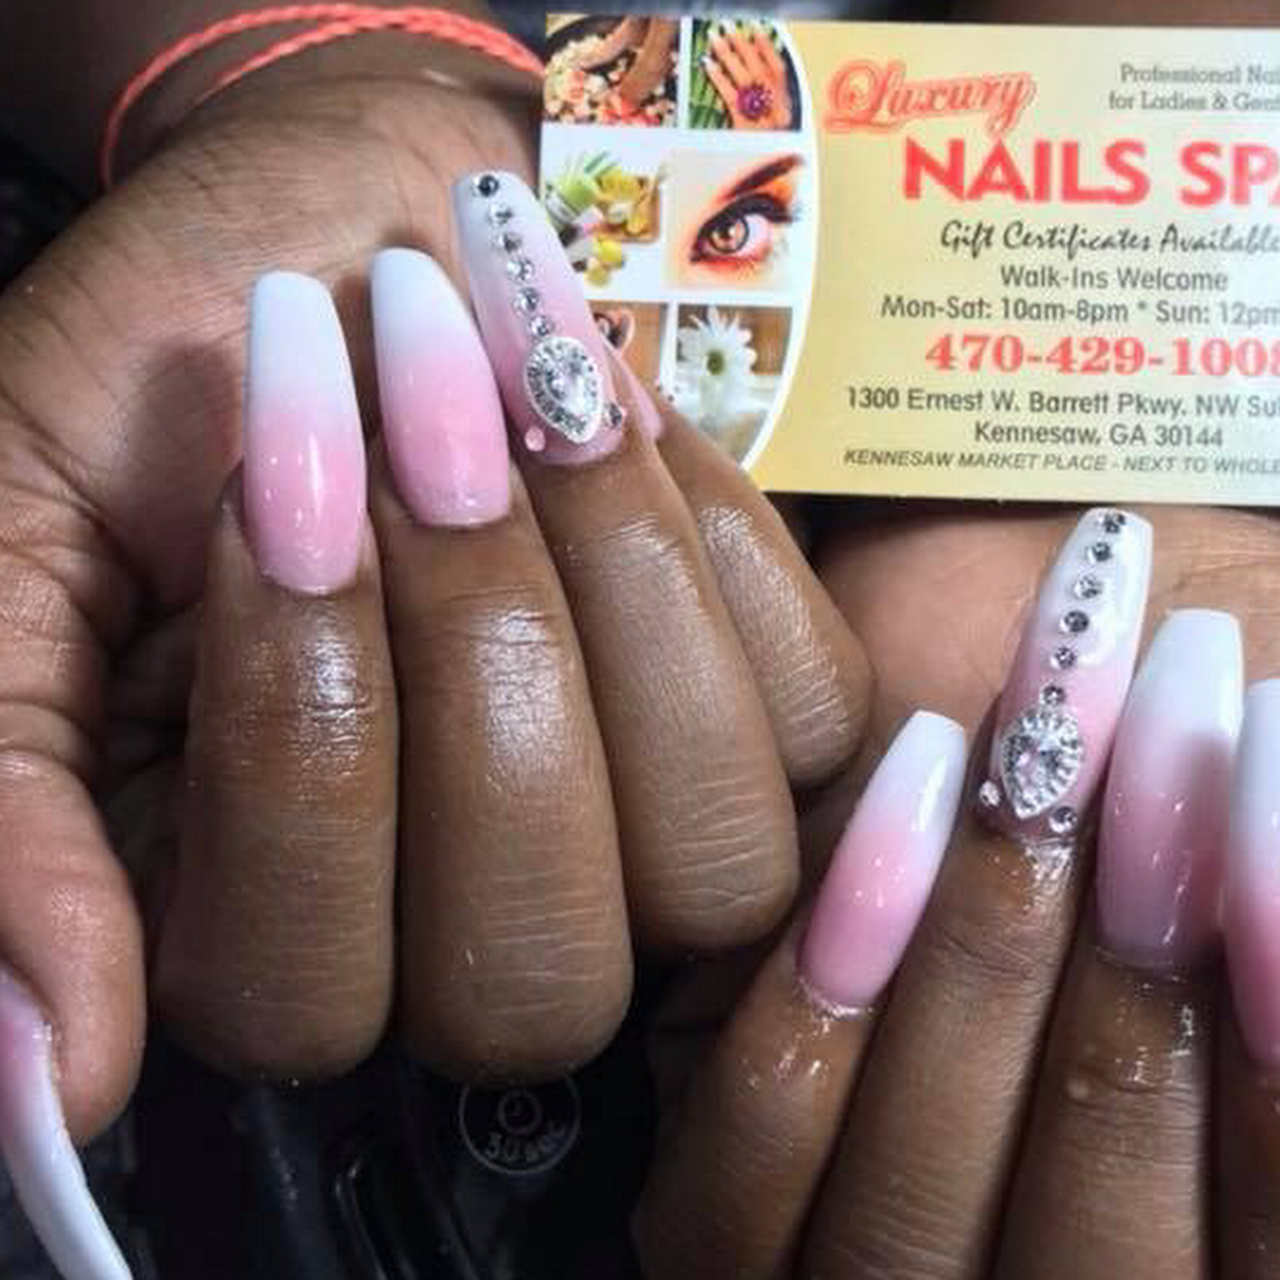 Luxury nail spa - Nail Salon in Kennesaw